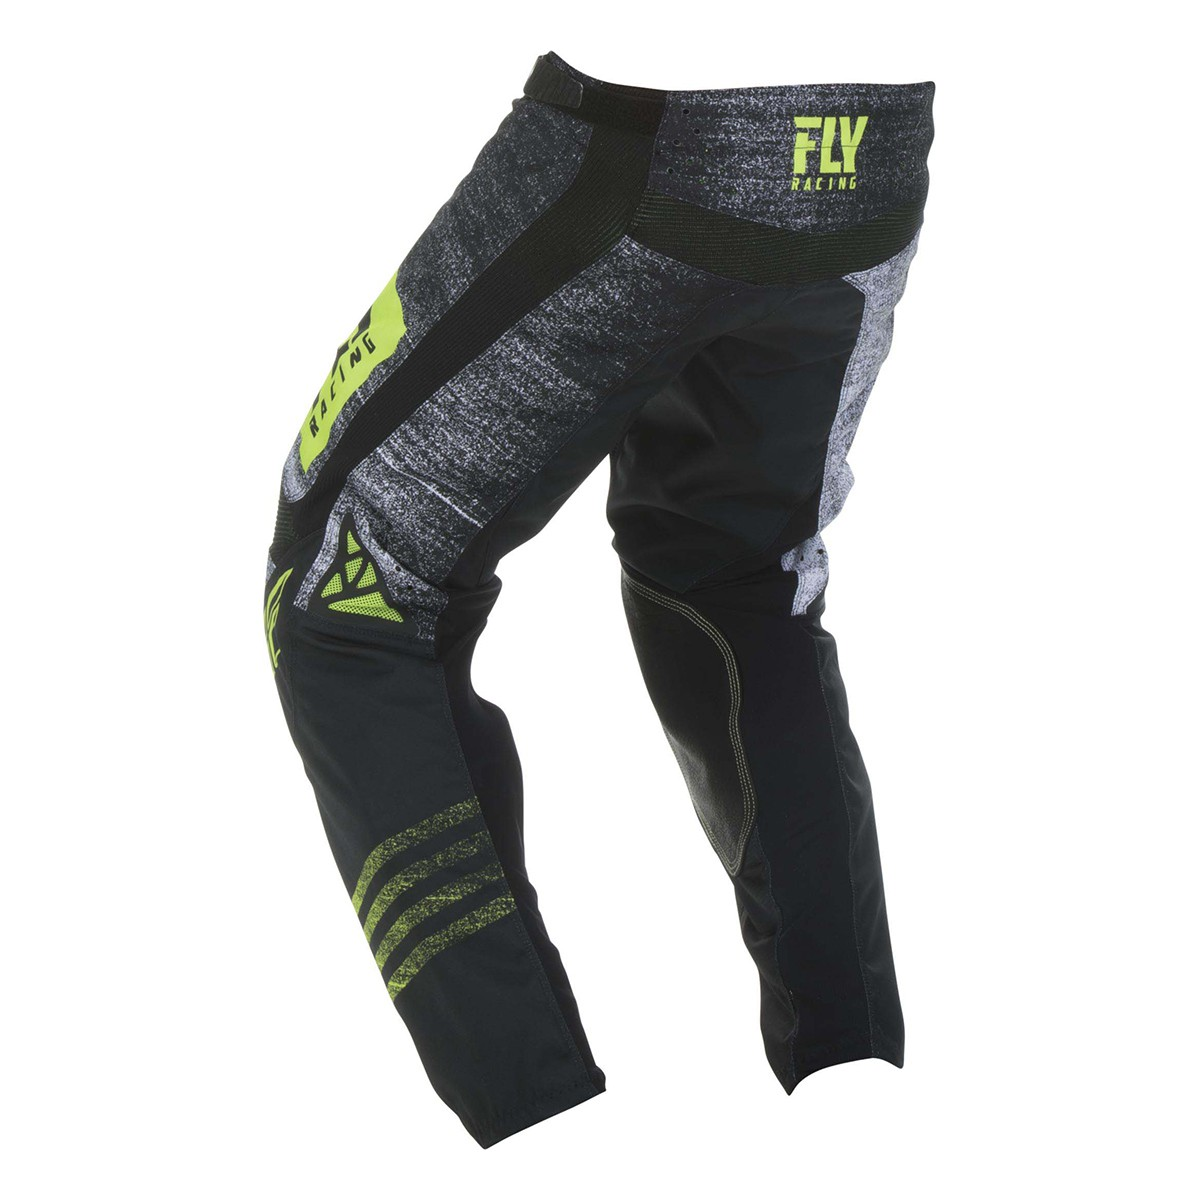 FLY KINETIC NOIZ 2019 PANTS